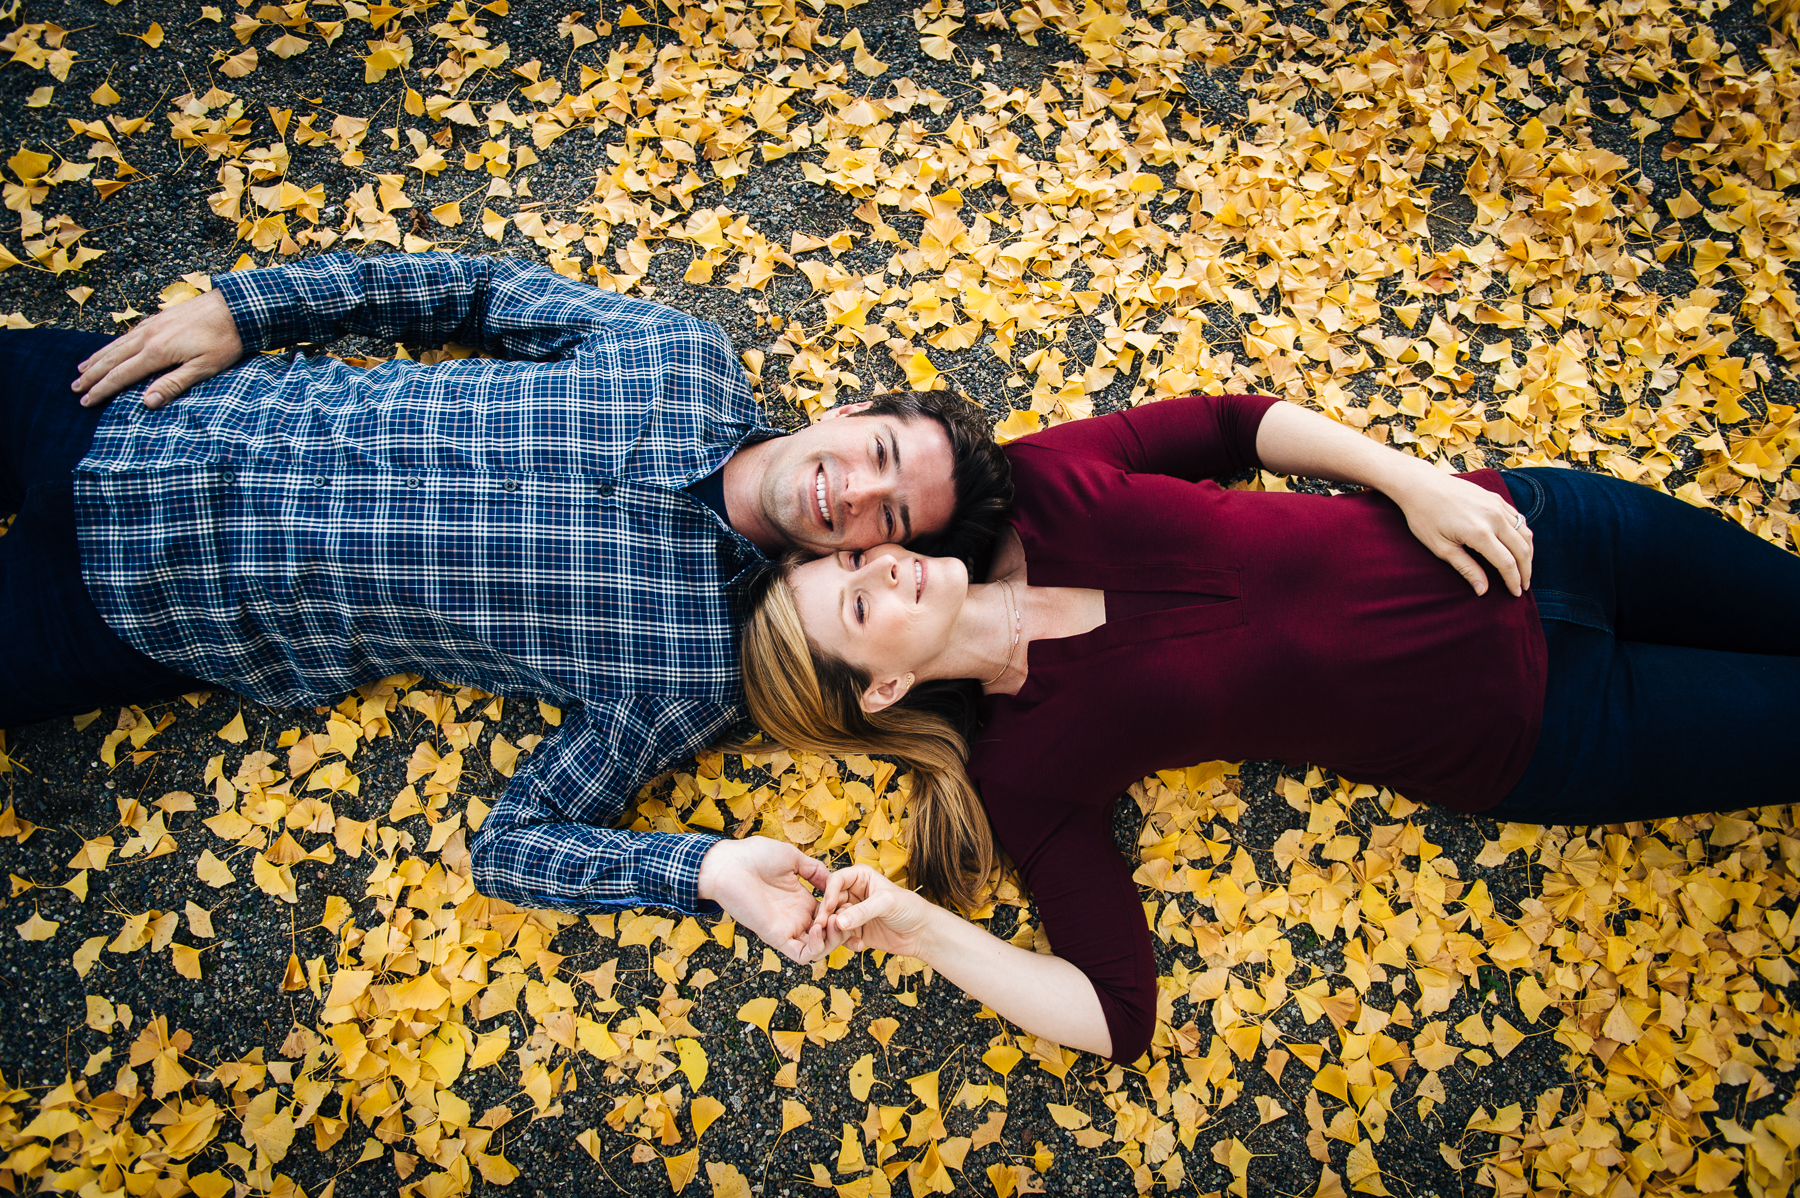 seattle-wedding-photographer-engagement-sessions-best-24